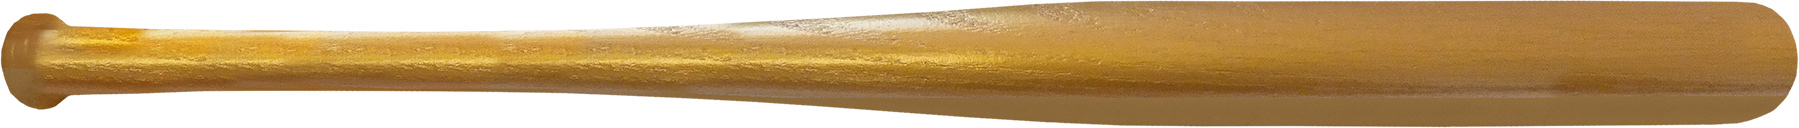 novelty gold baseball bat souvenir baseball bat